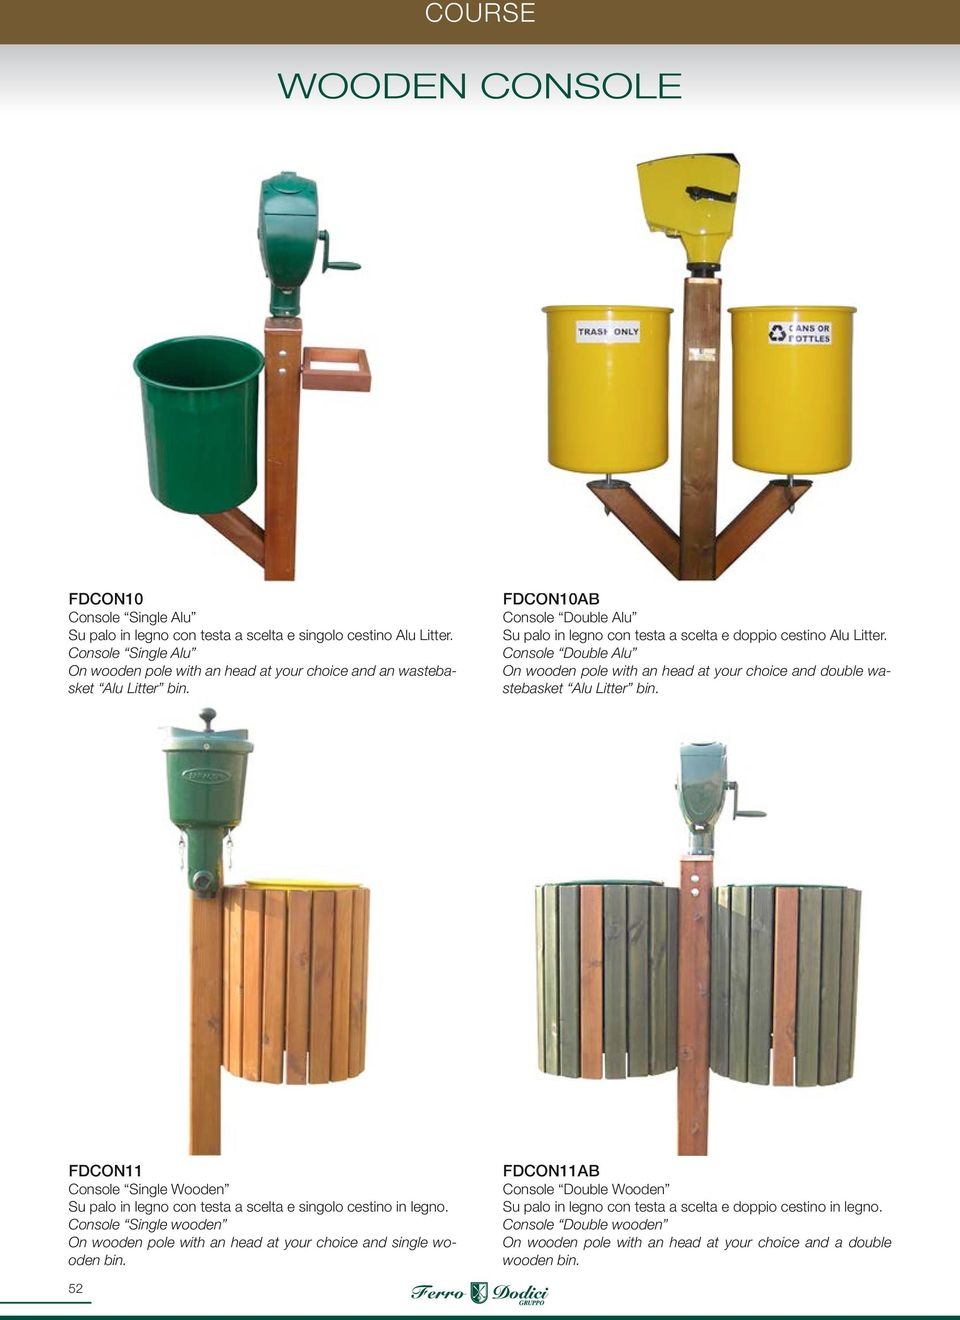 Console Double Alu On wooden pole with an head at your choice and double wastebasket Alu Litter bin.